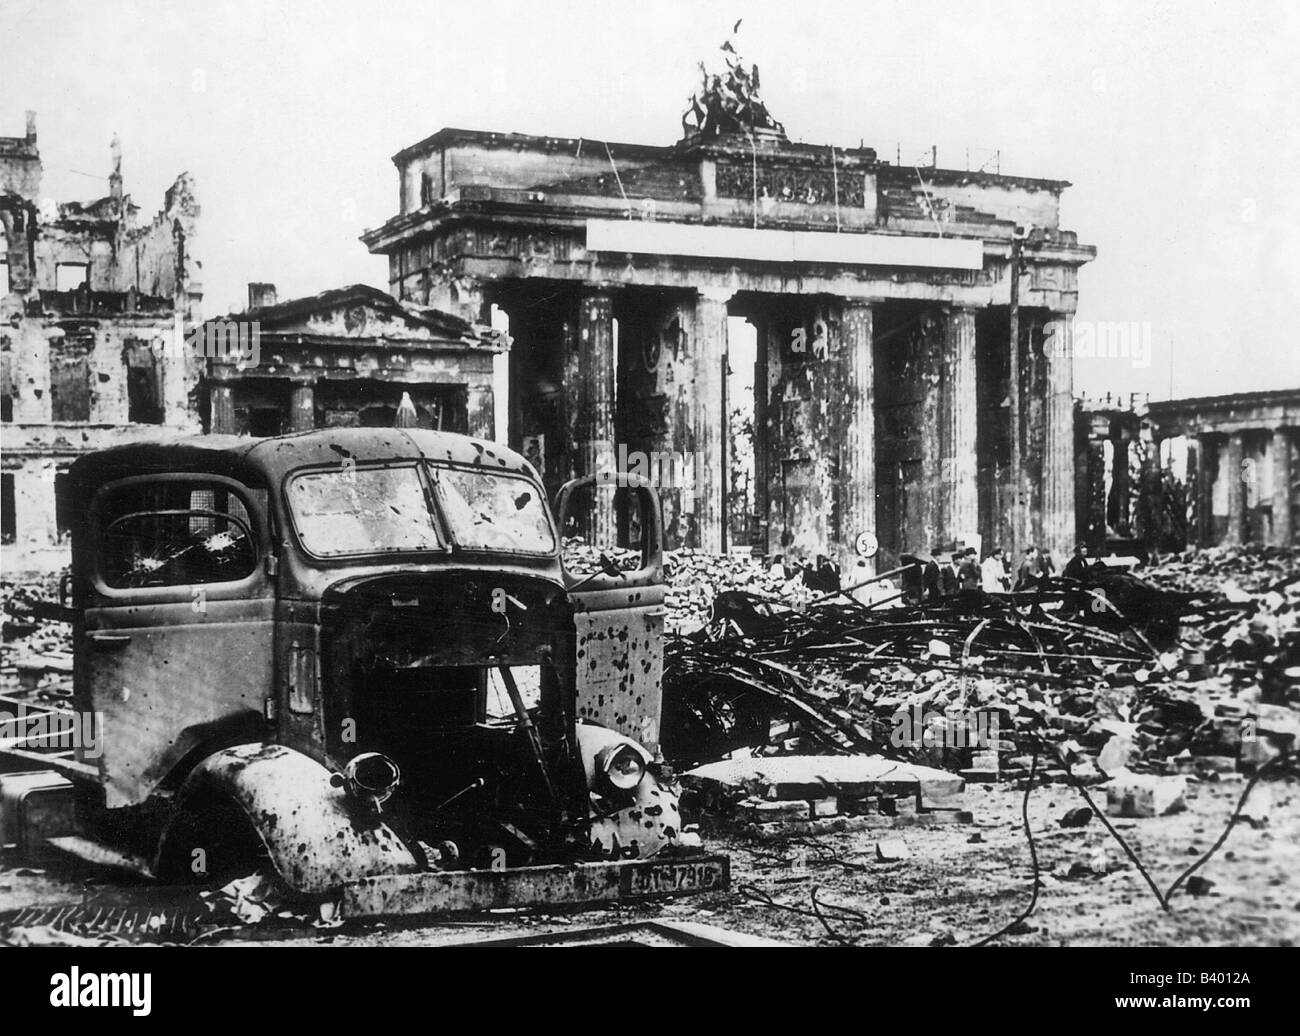 HISTORY IN PICTURES: BE THERE: Images Of War, History ...  |Brandenburg Gate Ww2